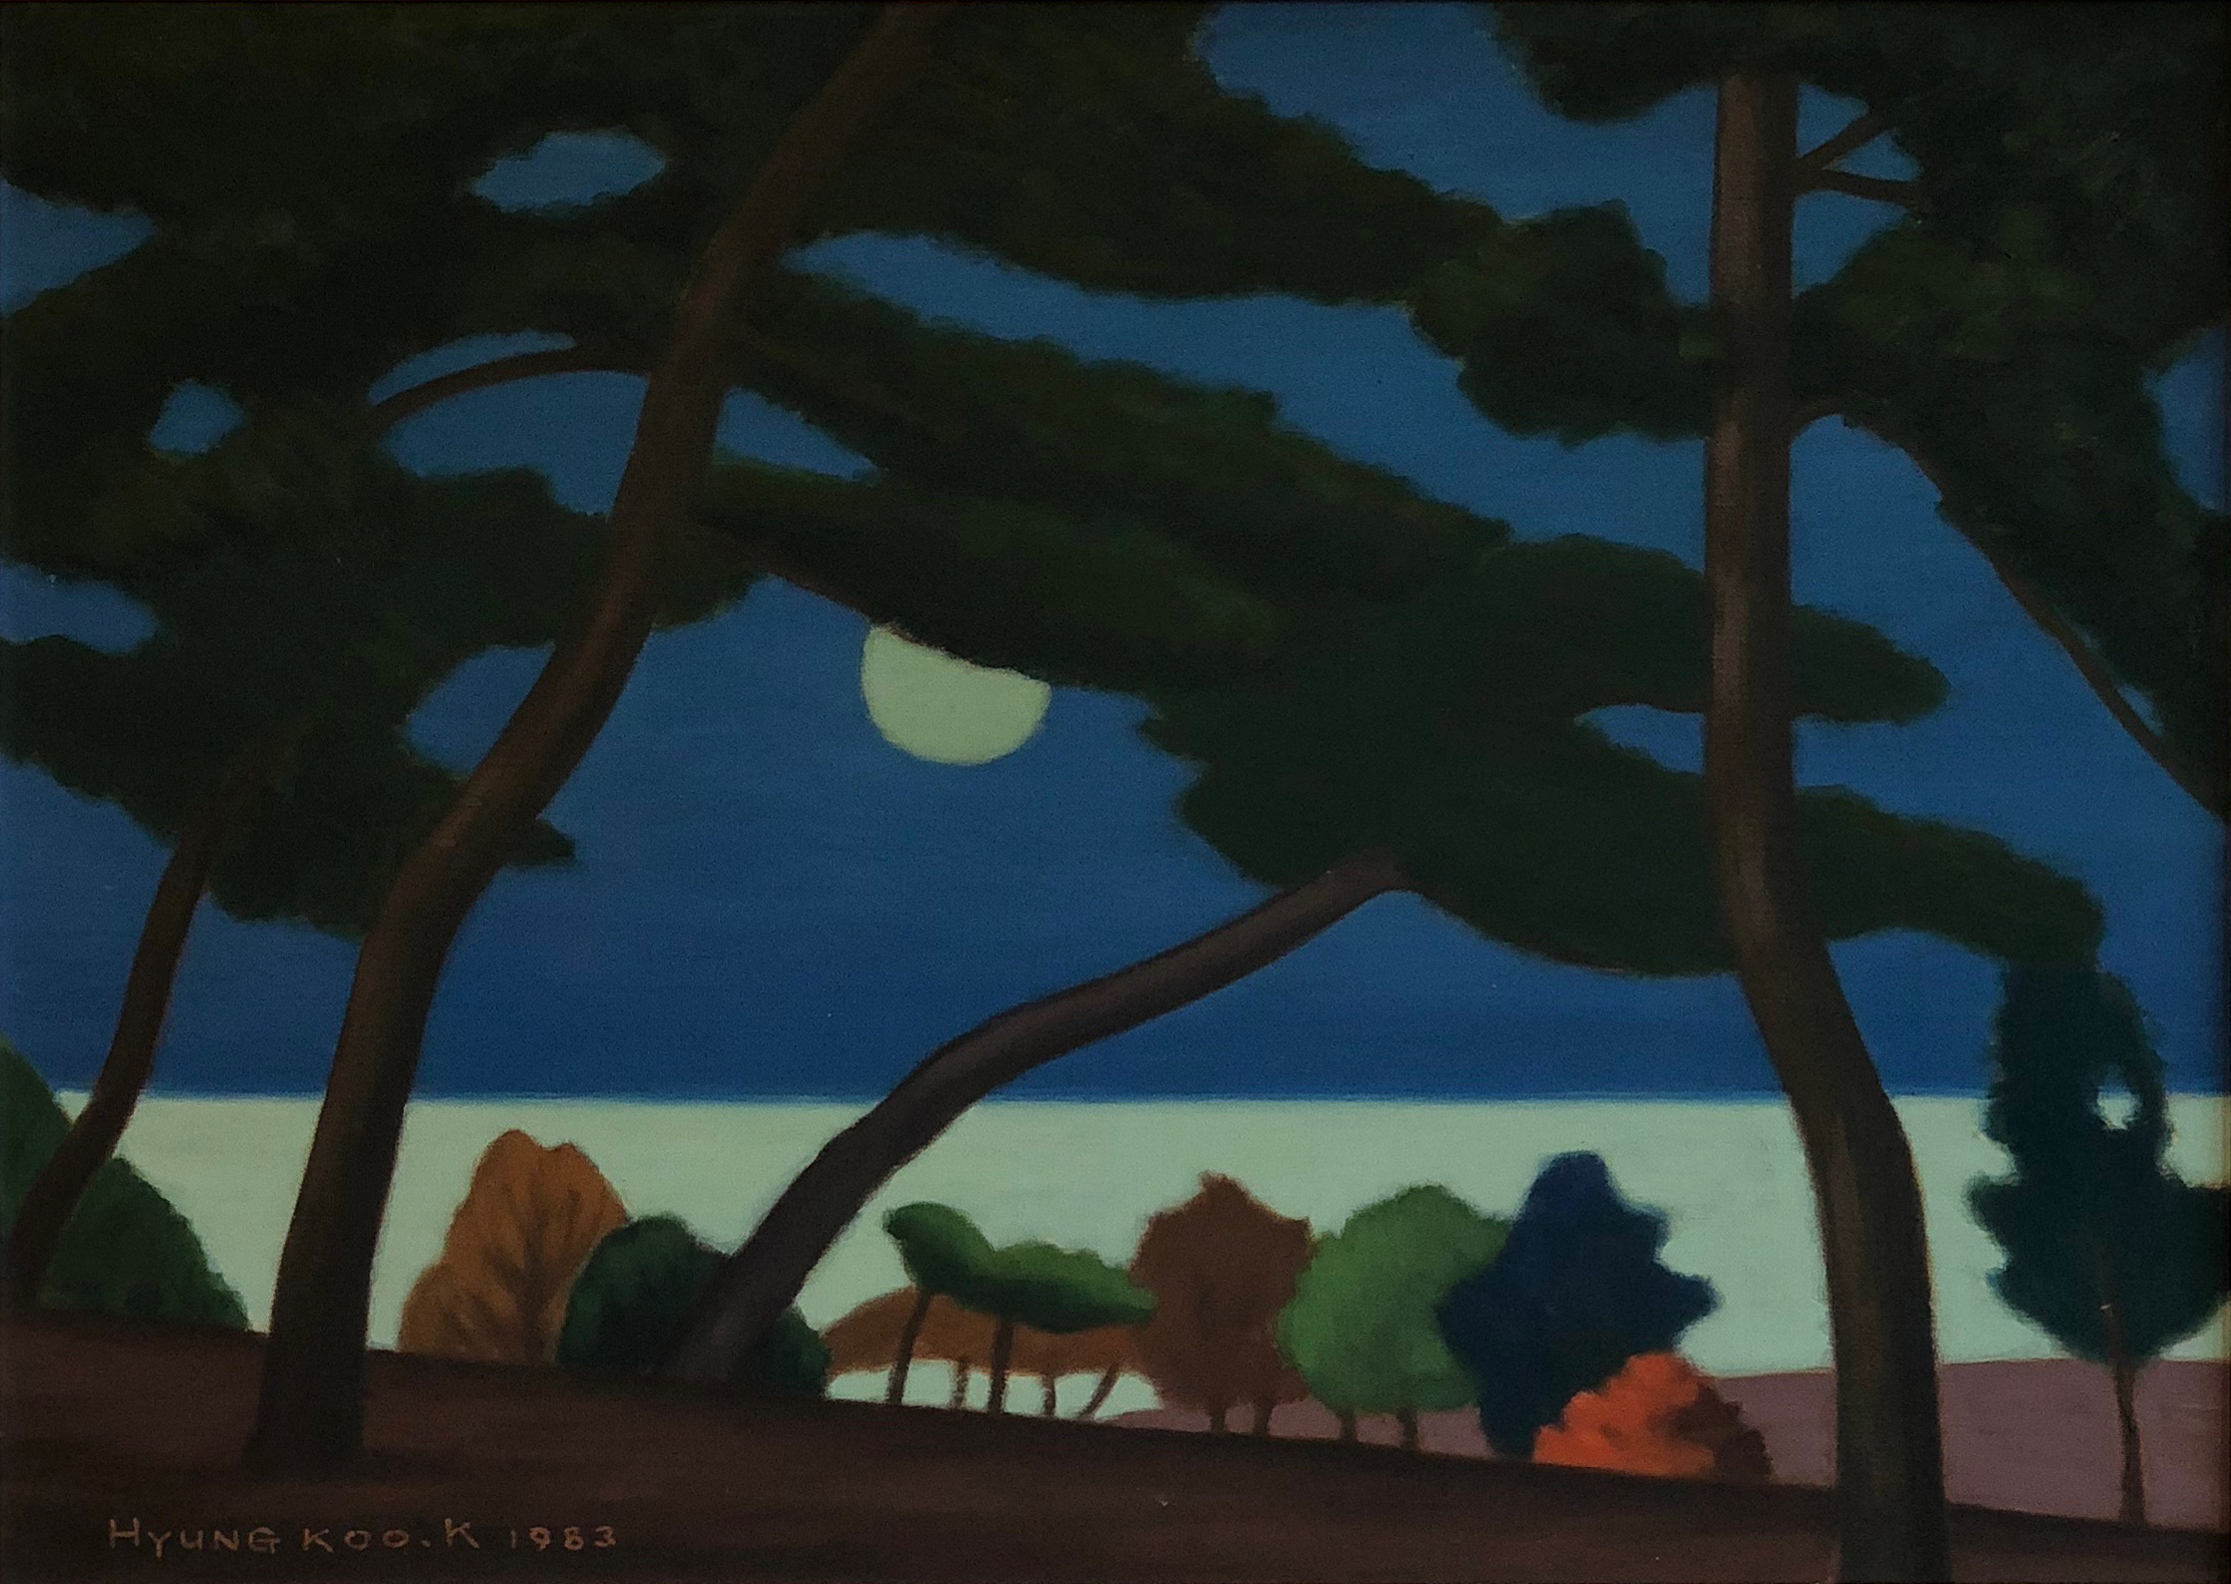 Moon and Sea, 1982